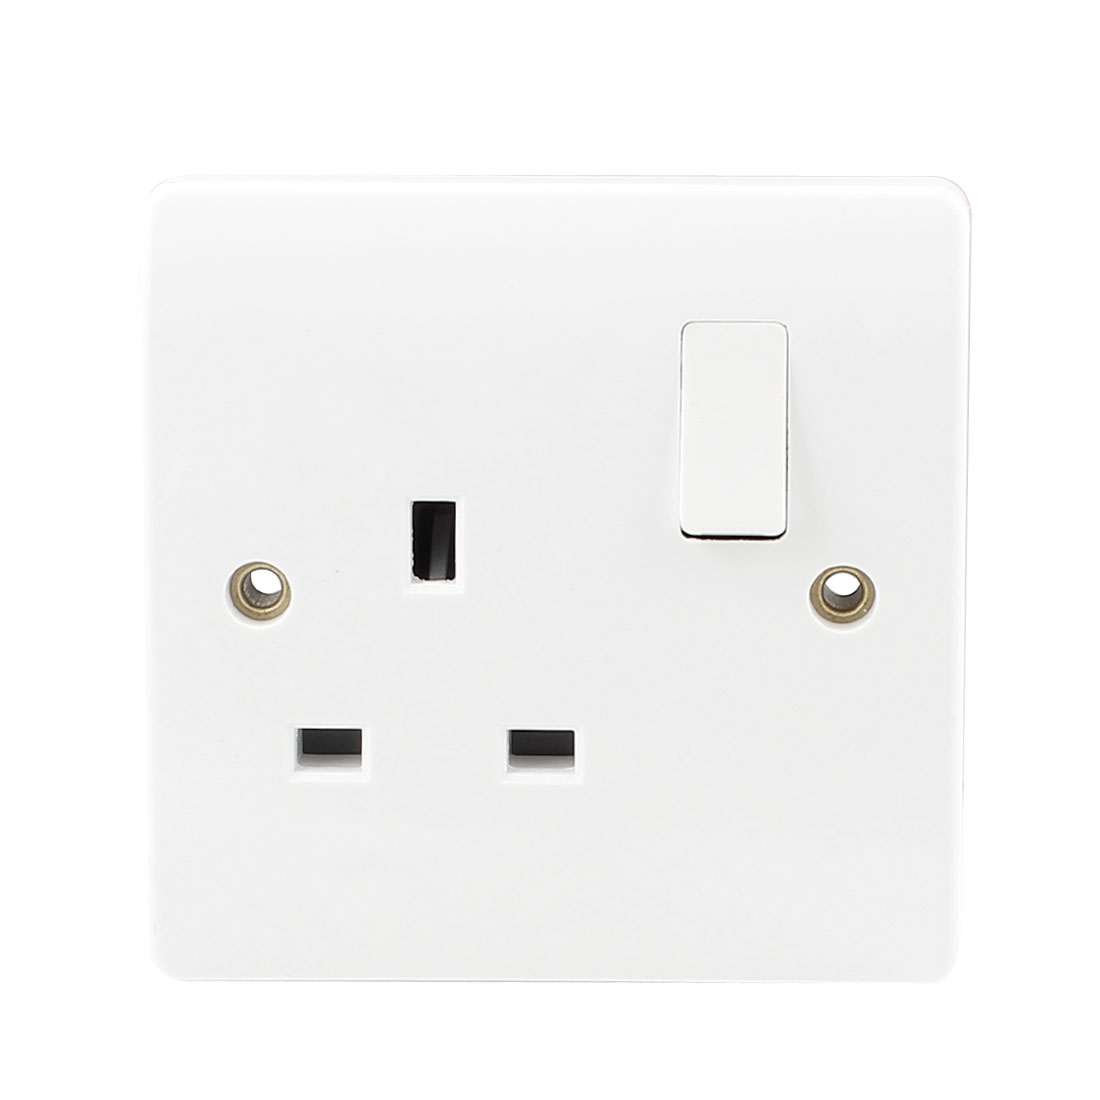 AC 250V UK Socket Single Pole Wall Switched Outlet White 86mm x 86mm